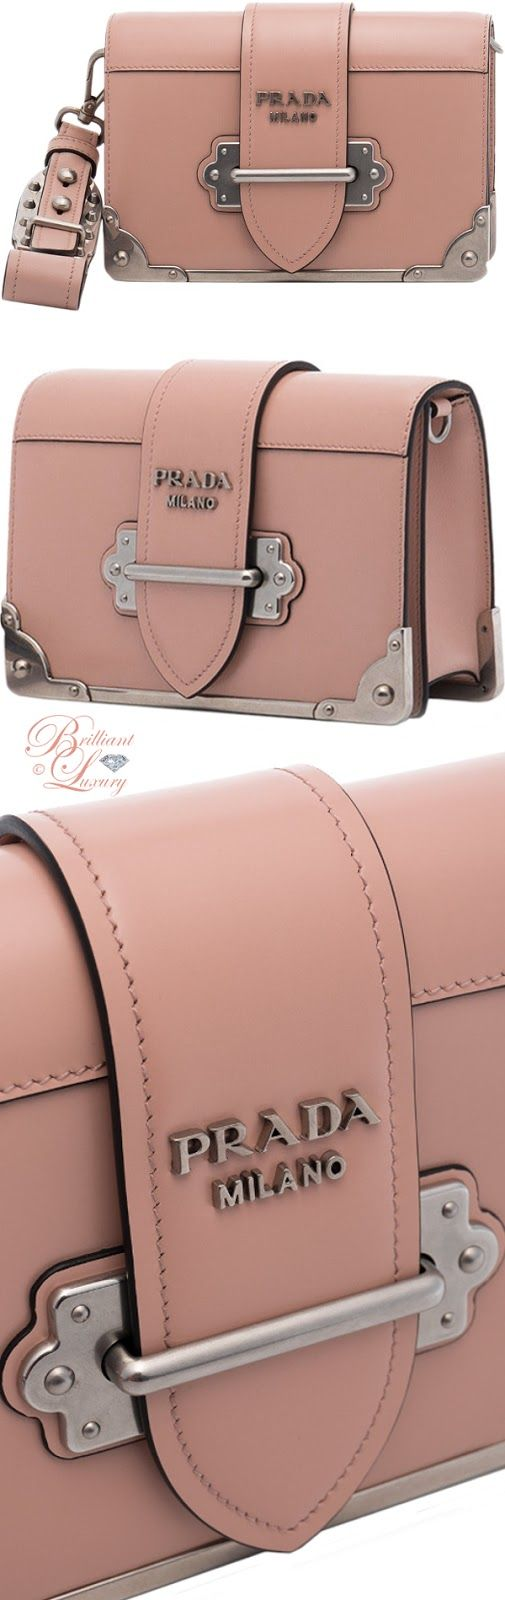 Brilliant Luxury ♦ Prada Cahier Mini shoulder bag. Wow this is super cute, probably in another color